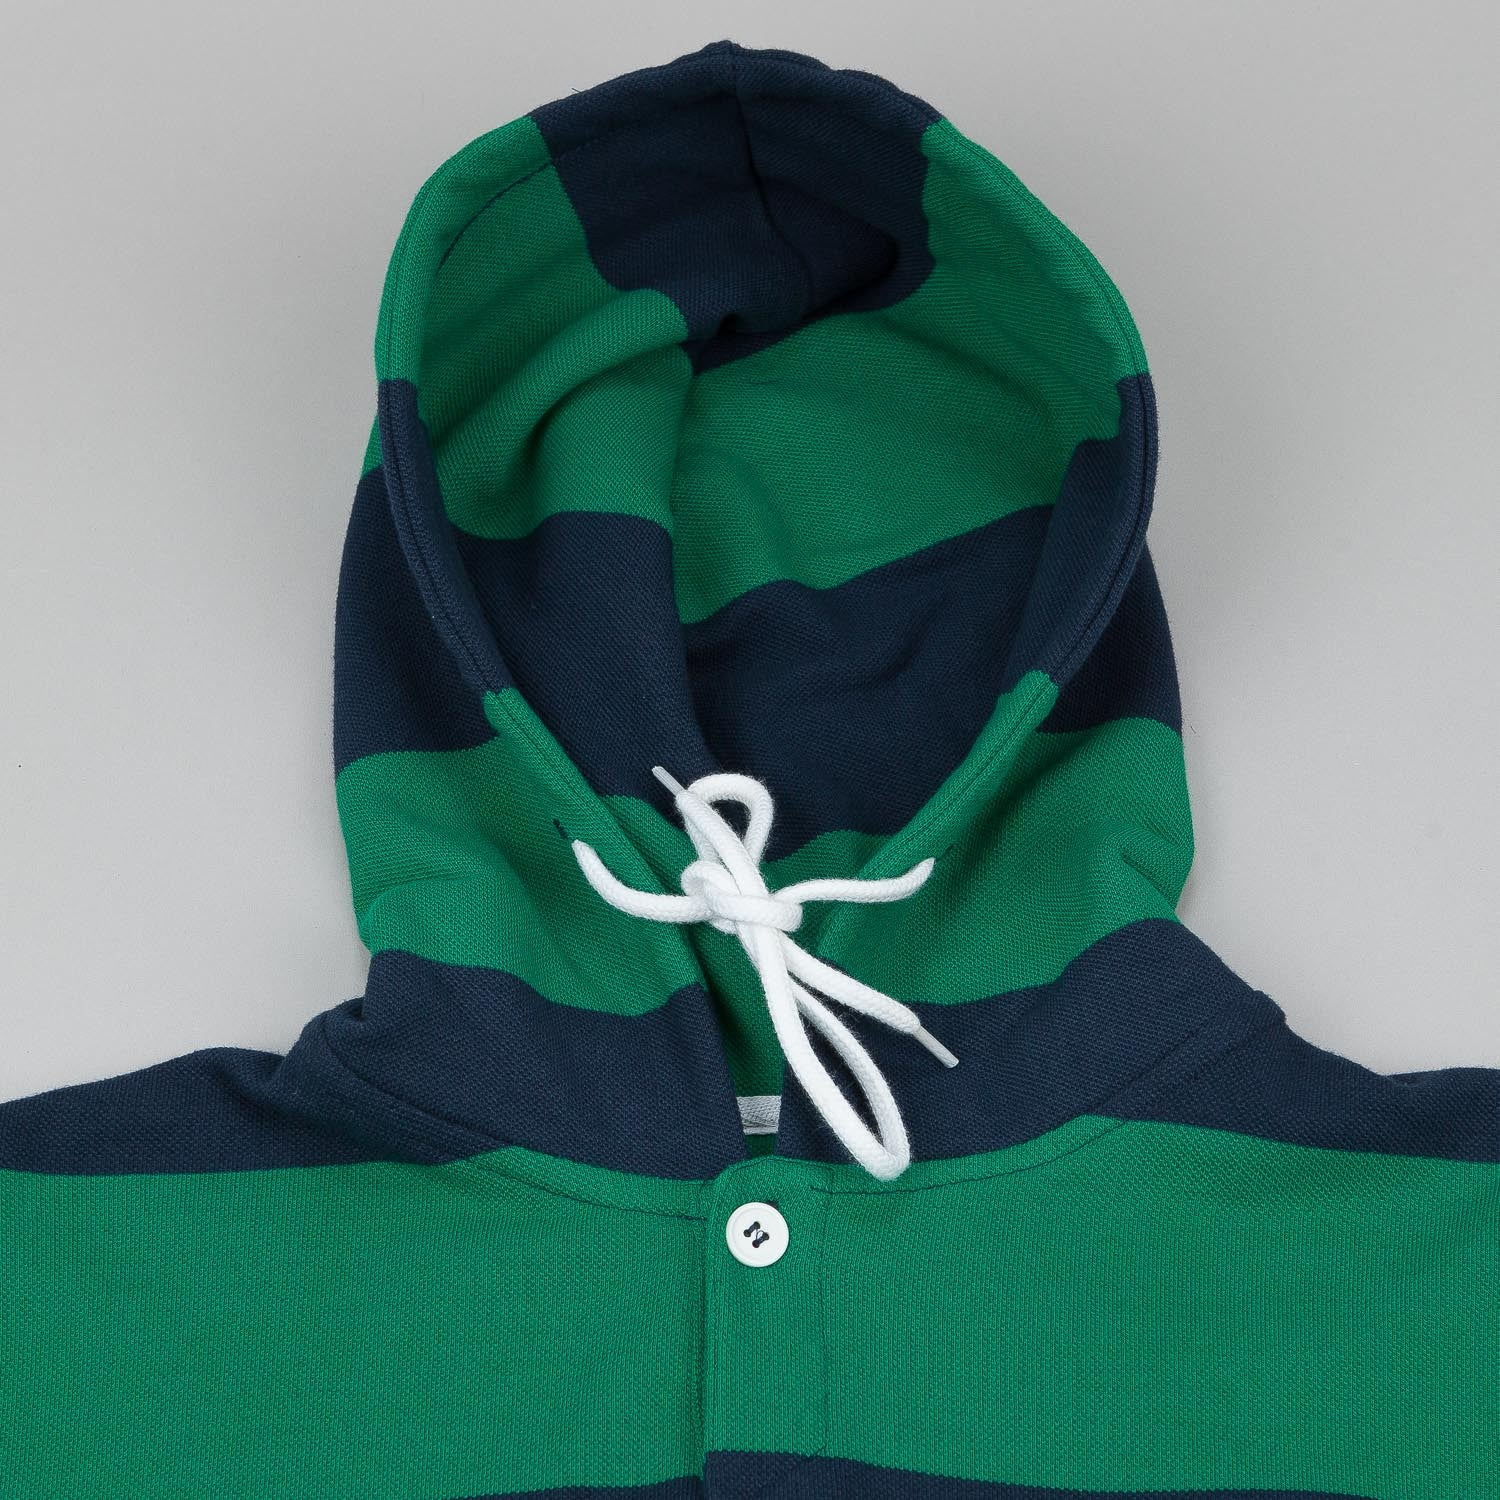 Fourstar Koston Striped Hooded Sweatshirt - Kelly Green / Navy